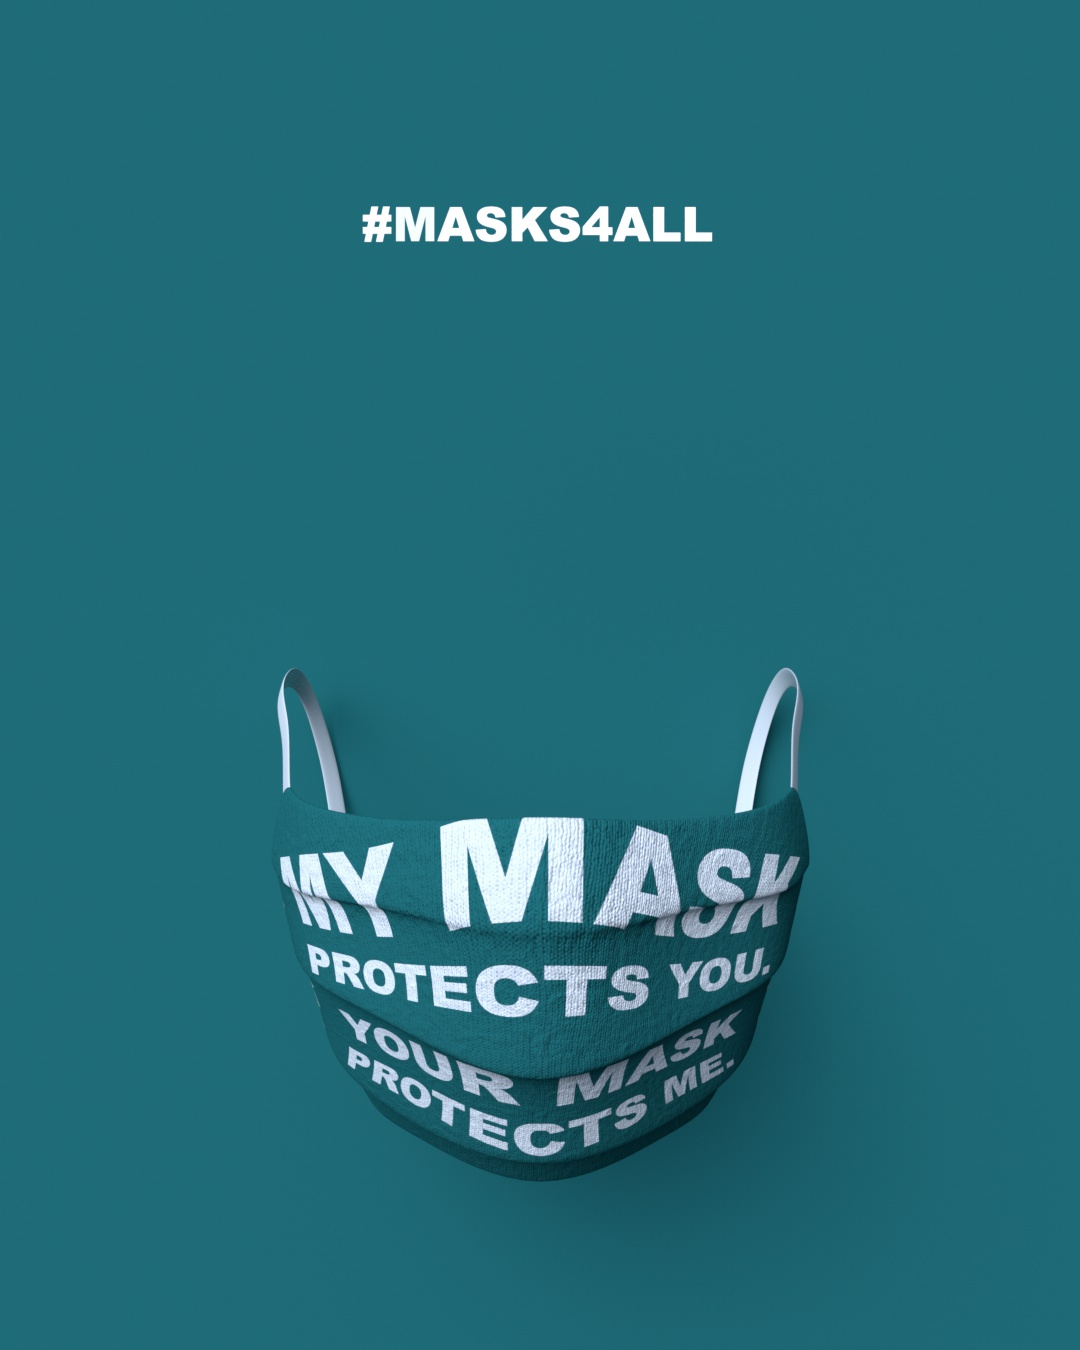 Masks4all Poster 13 by Trago Studio